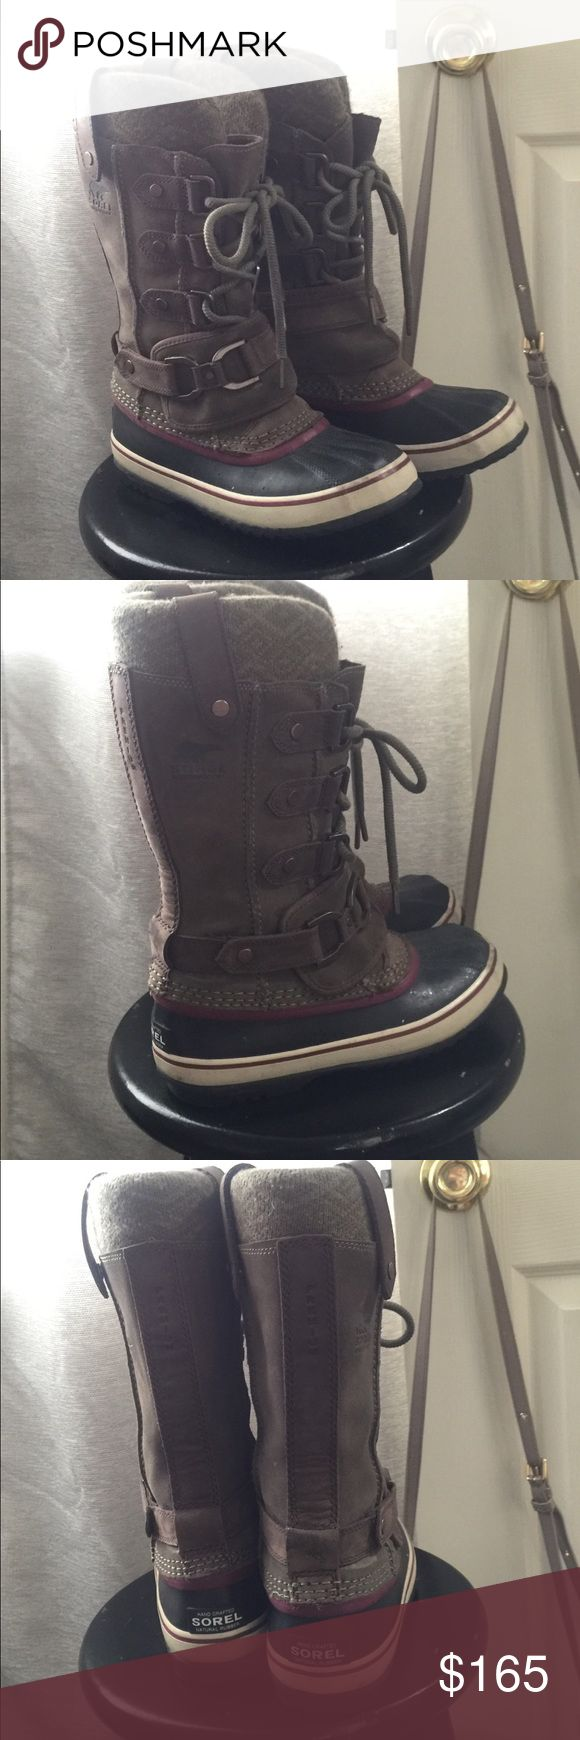 Premium Sorel snow boots 💕 Waterproof snow boots, suede uppers with removable, washable liners. Warmth rating to -20. In good used condition, for heavy snow. Sorel Shoes Winter & Rain Boots